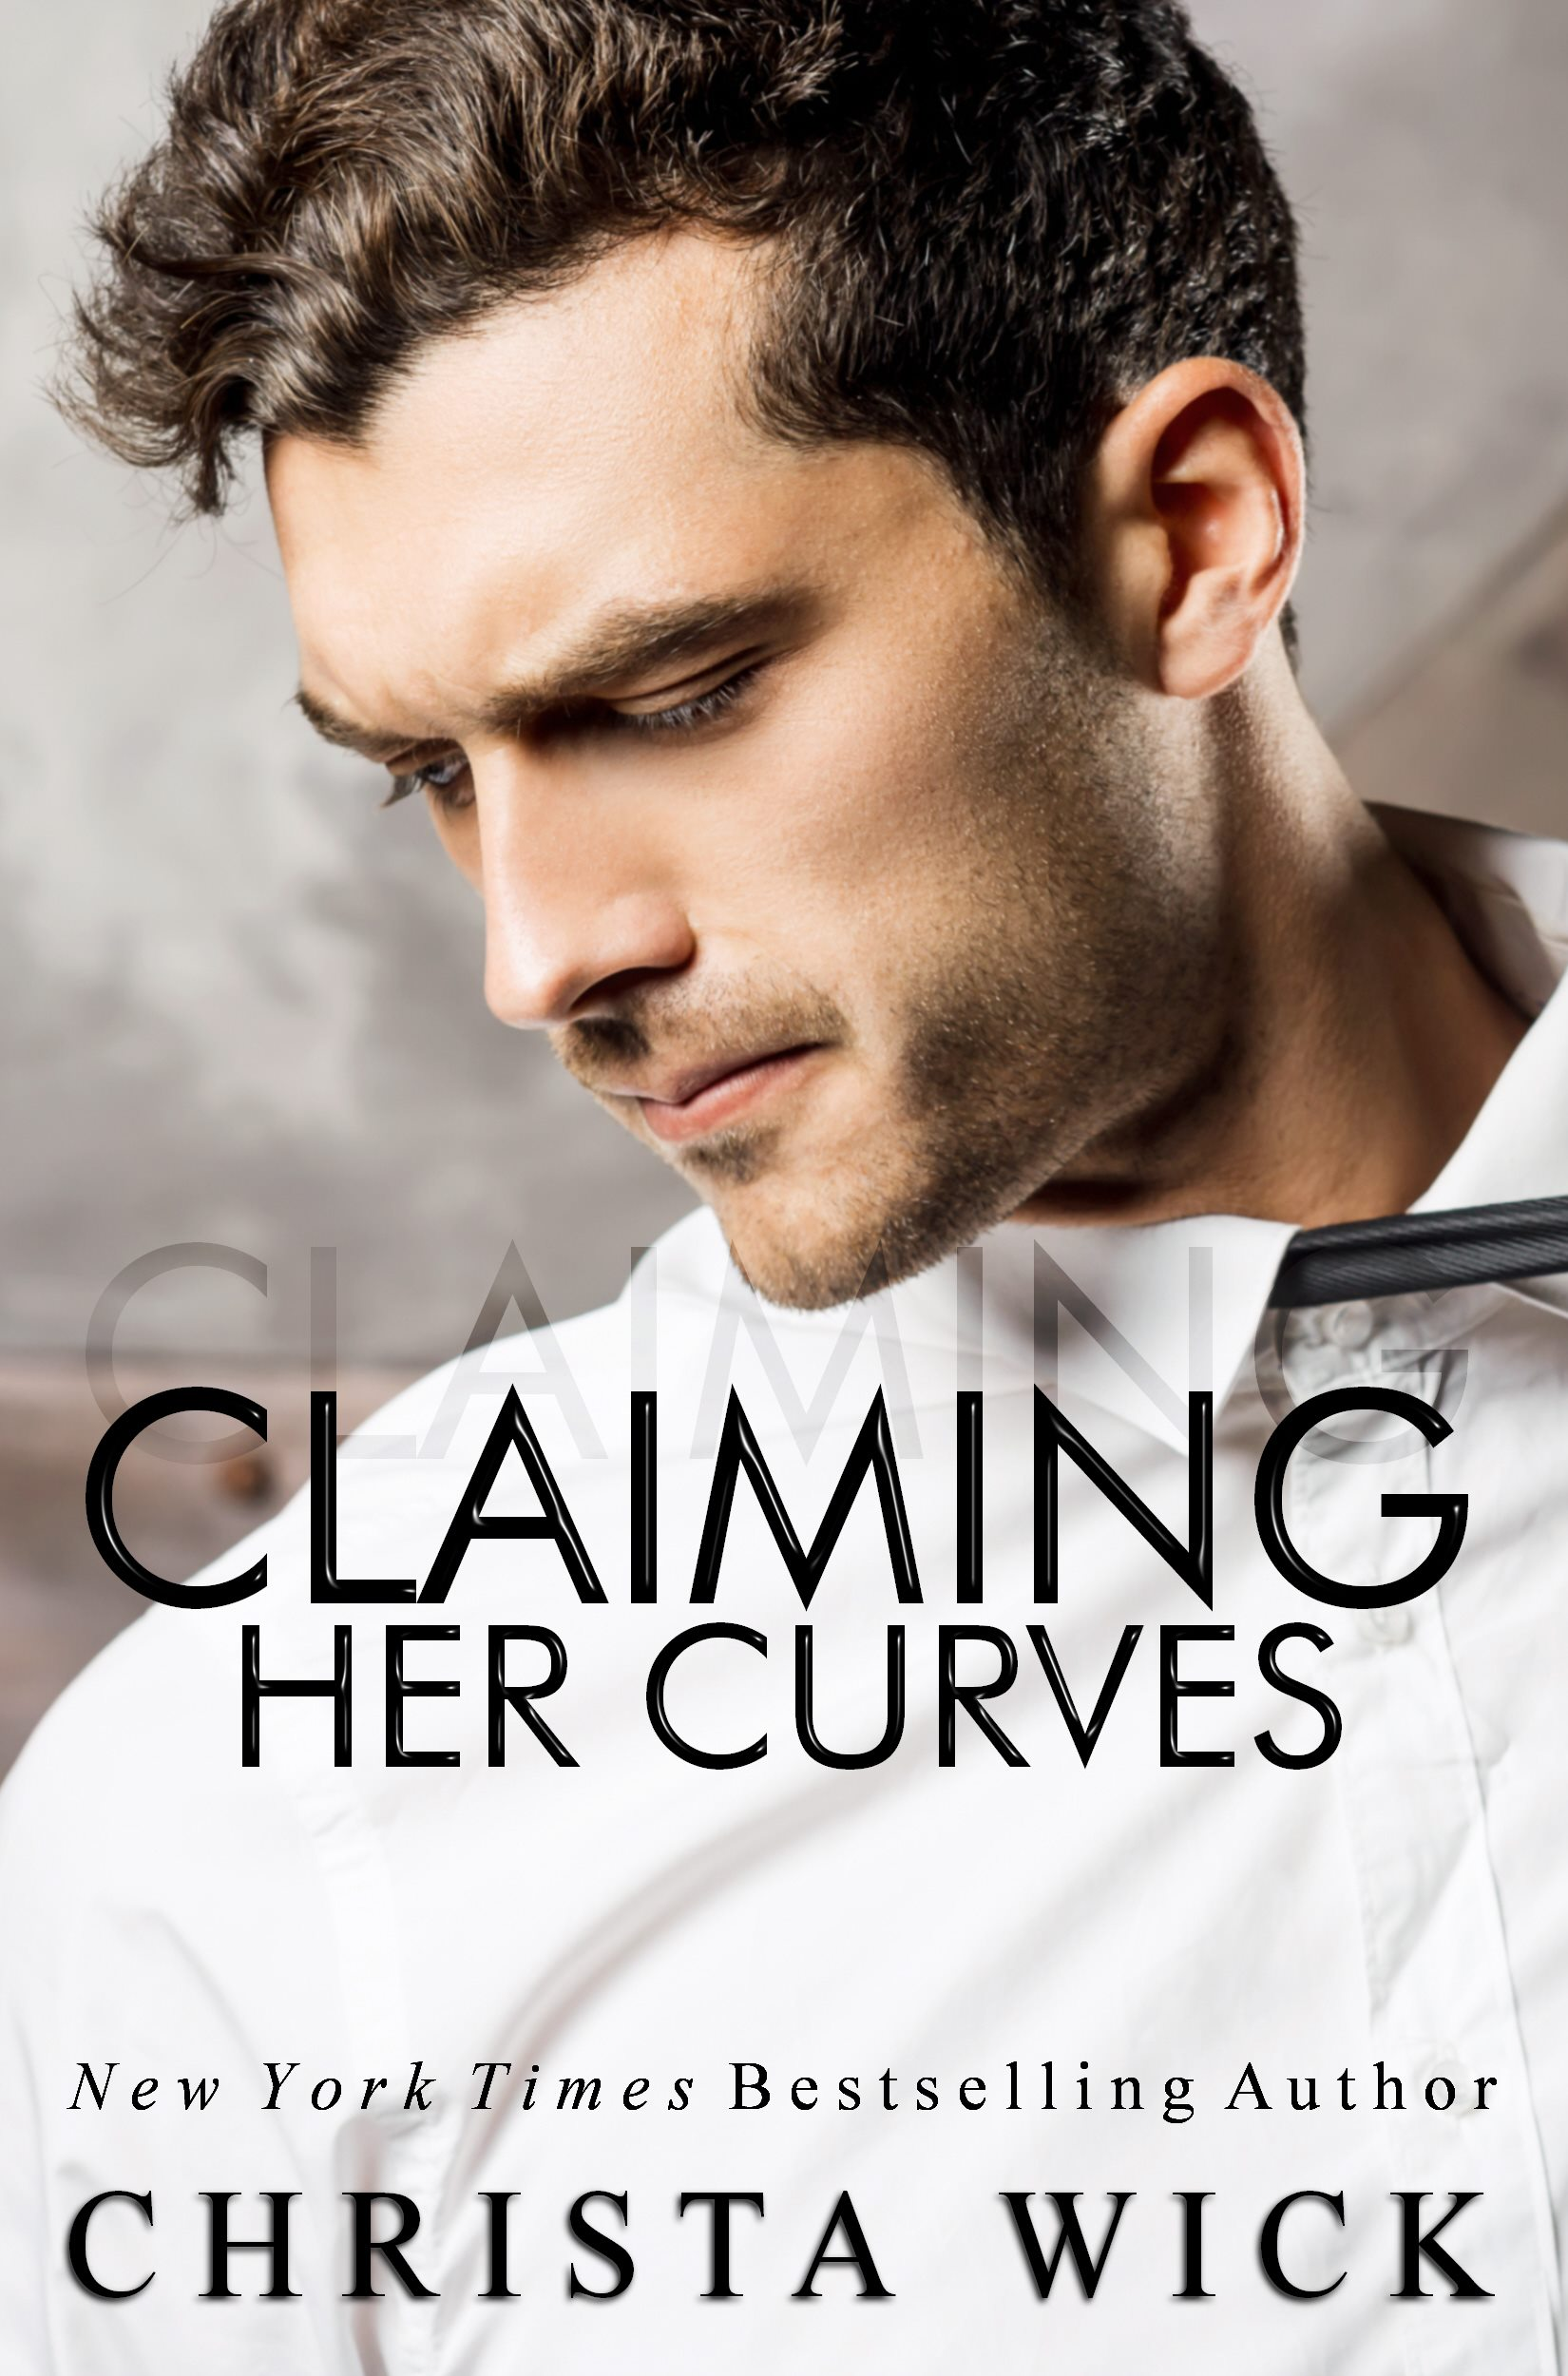 New Release Claiming Her Curves By Christa Wick